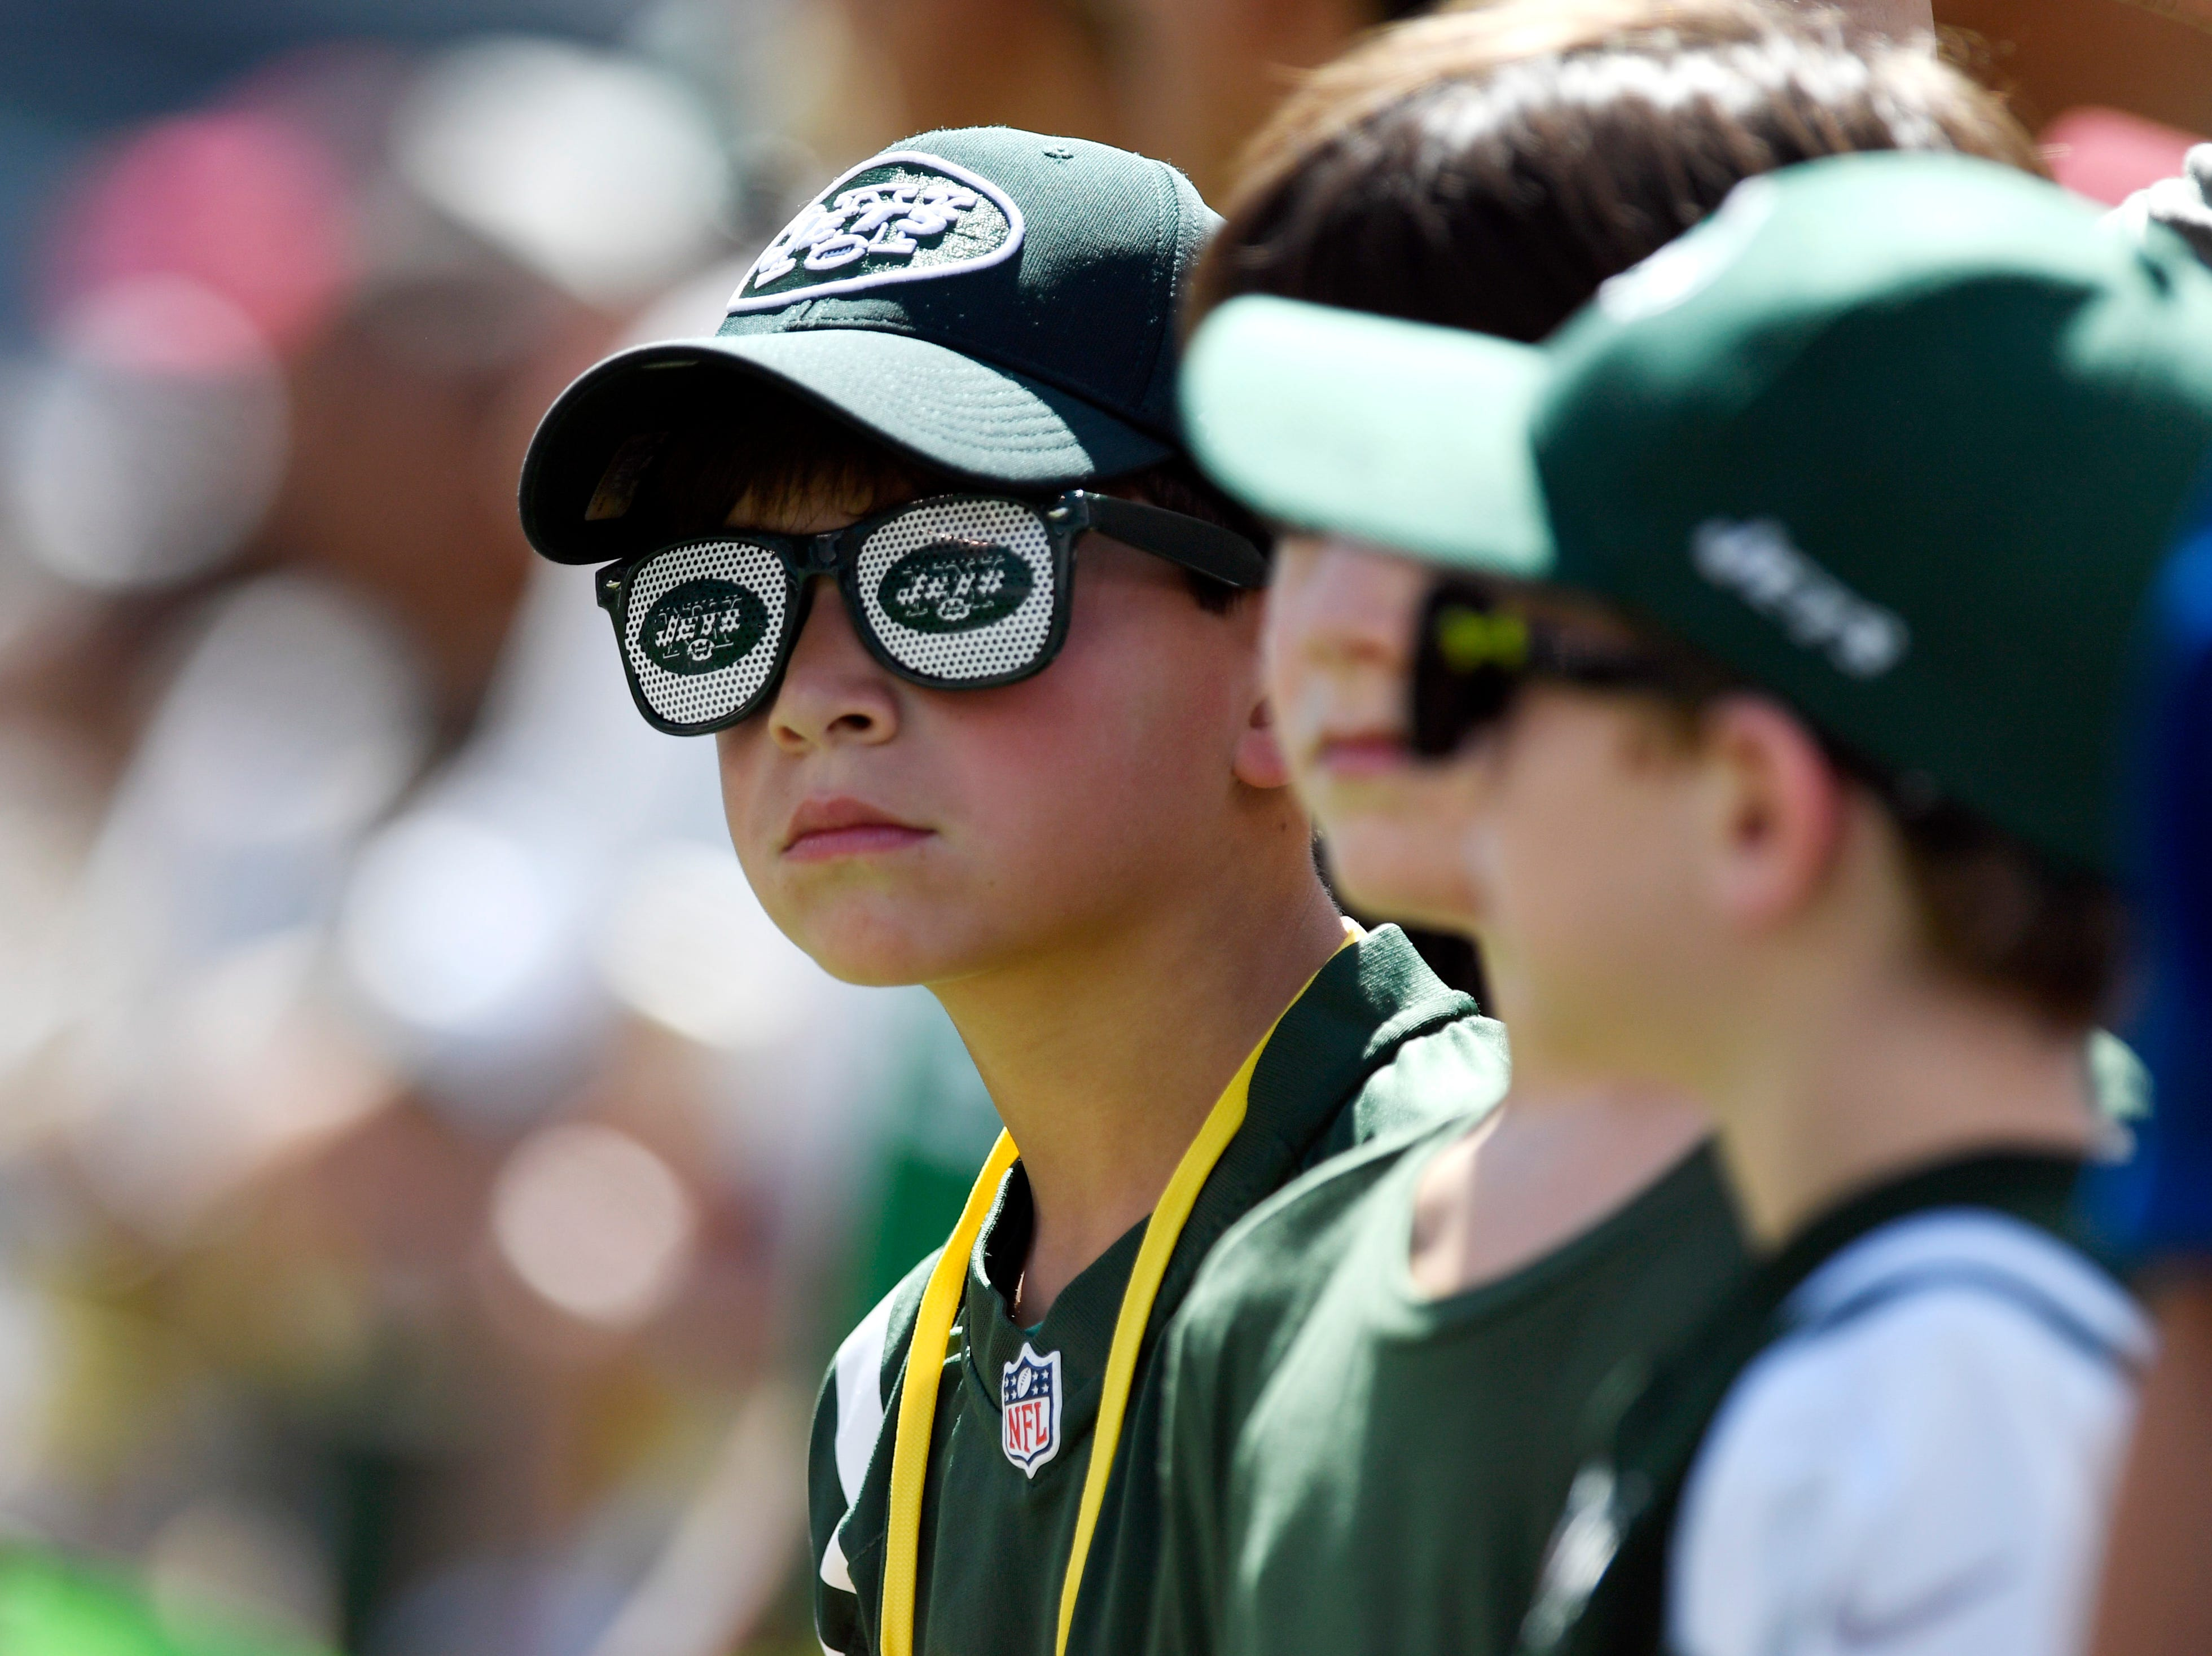 Young Jets fans on the sideline before the game. New York Jets face the Miami Dolphins in Week 2 at MetLife Stadium in East Rutherford, NJ on Sunday, September 16, 2018.